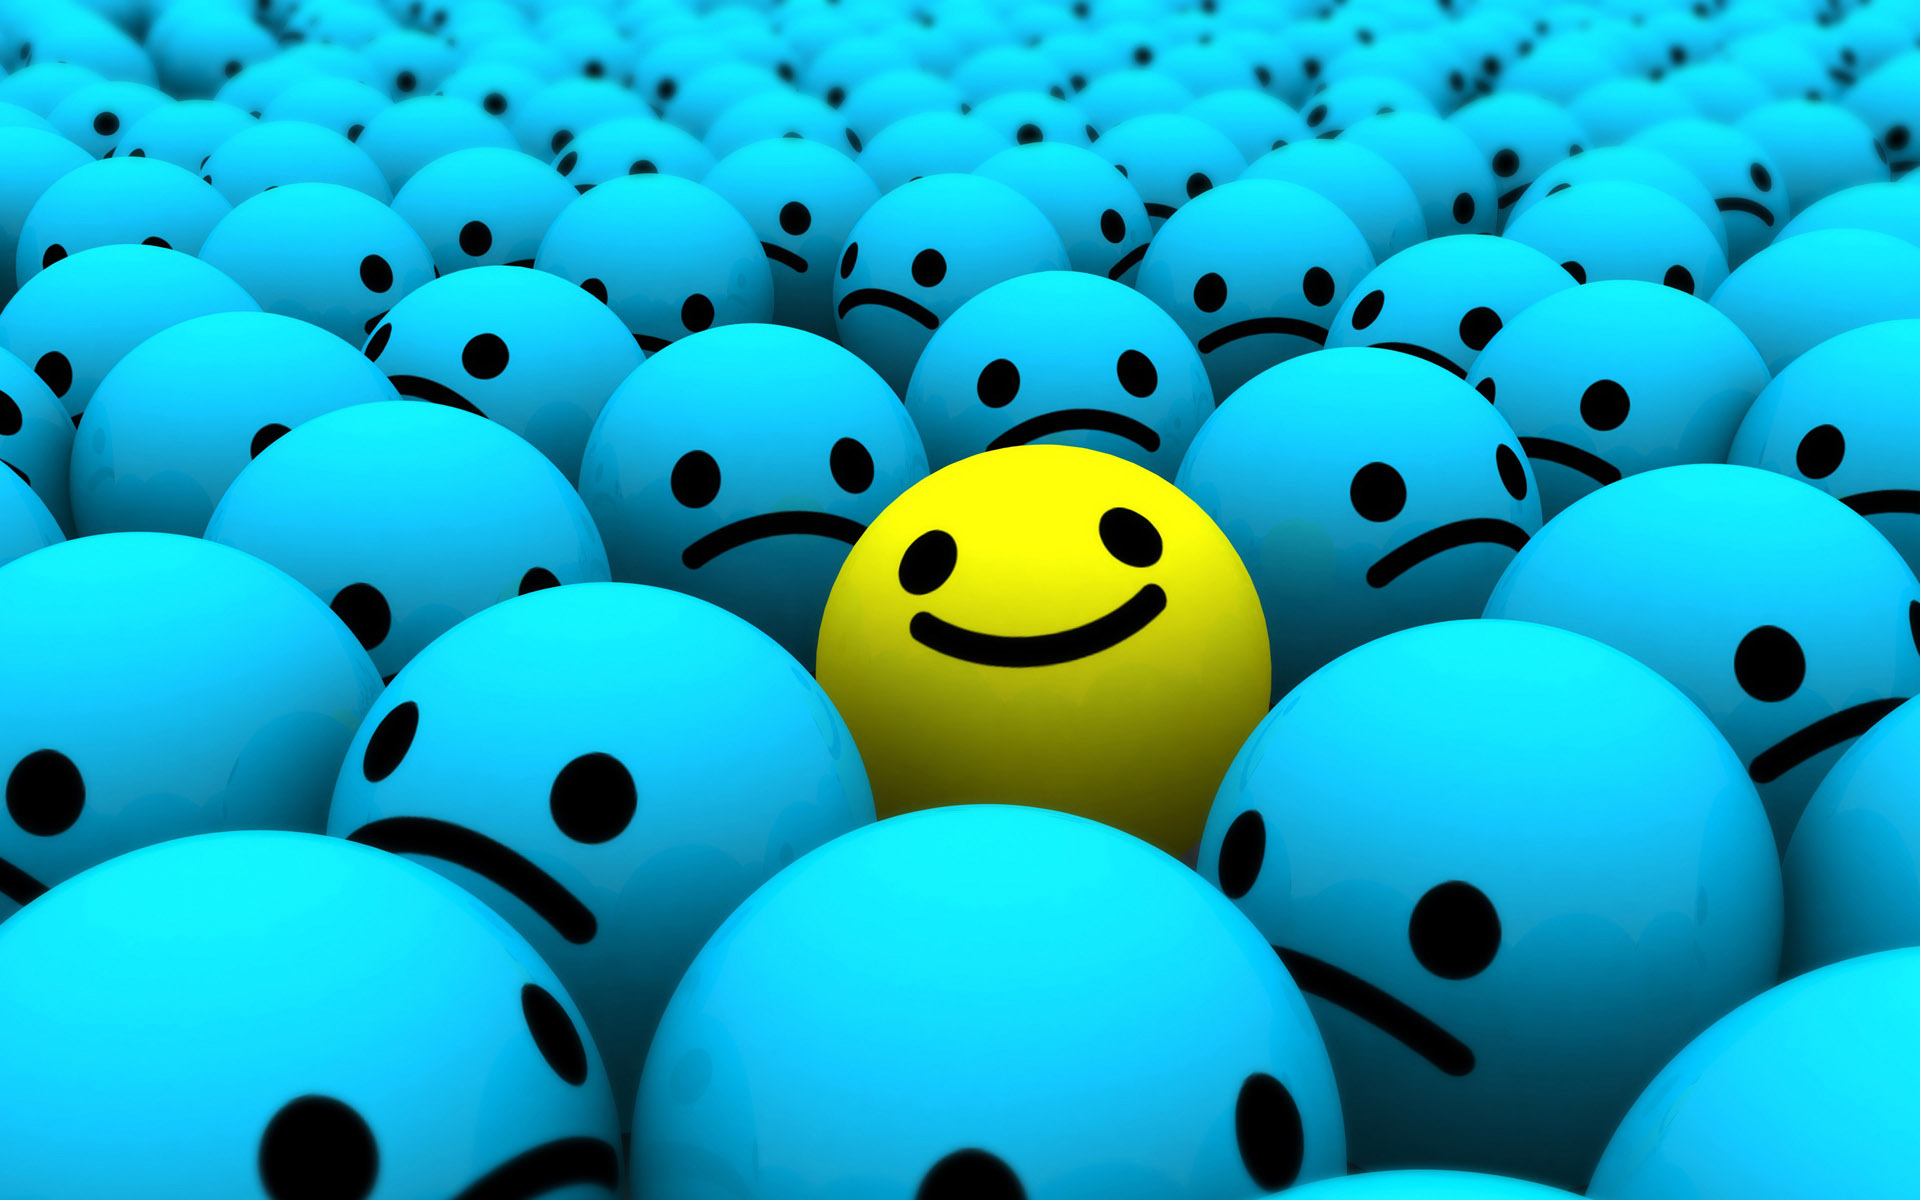 Smile » Live HD Smile Wallpapers, Photos – download for free